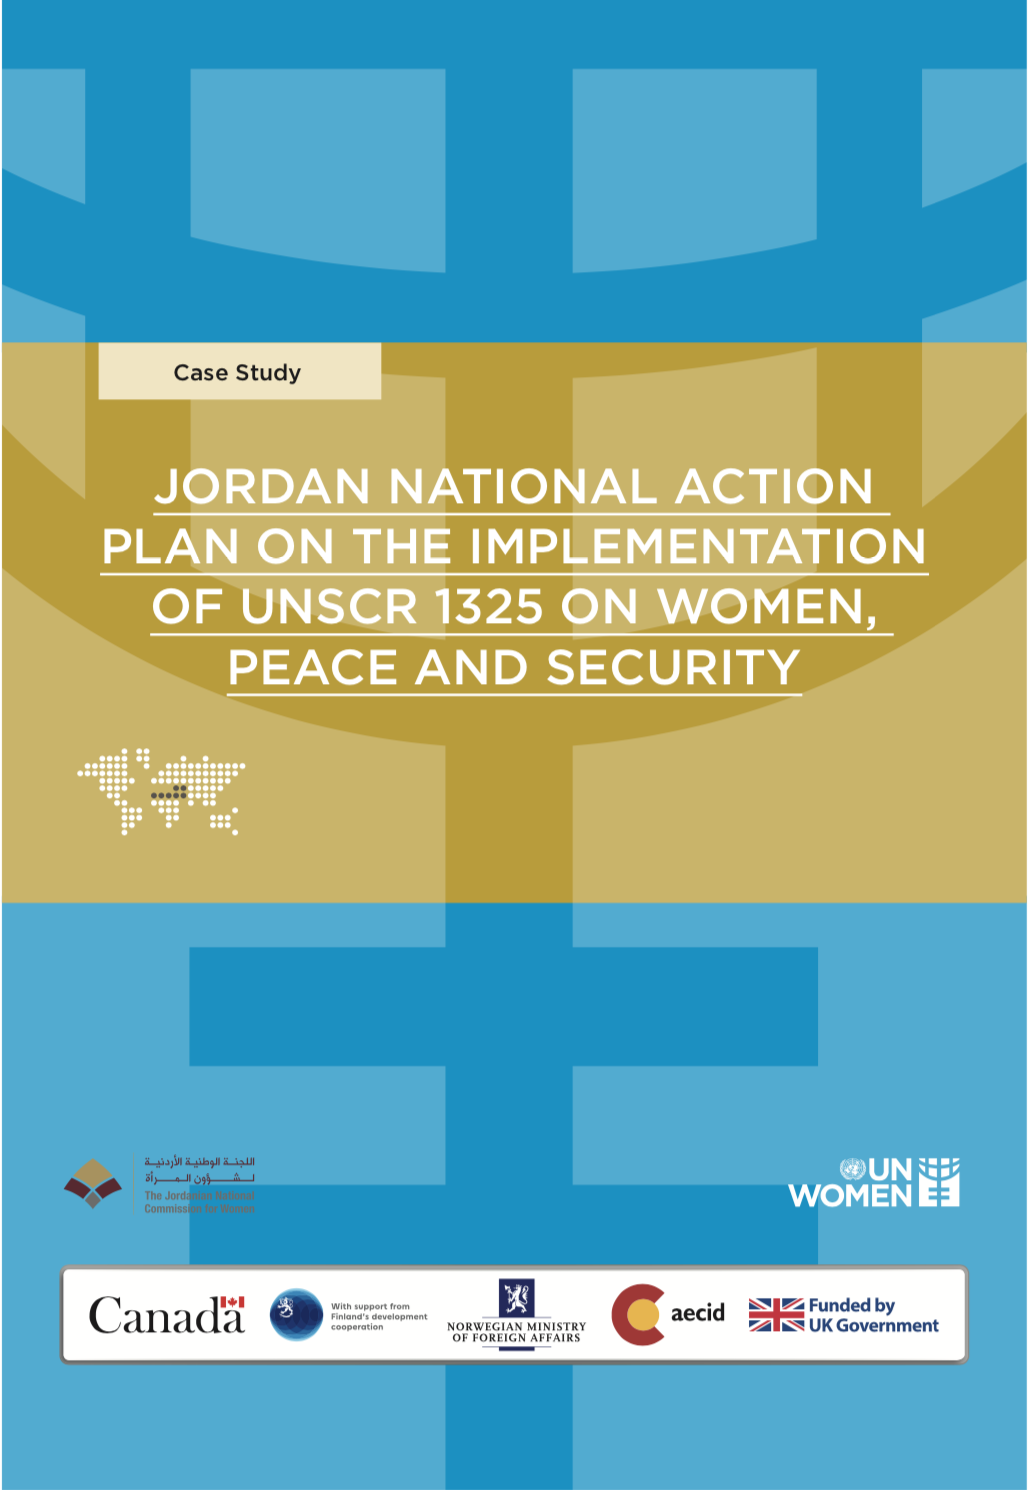 JONAP Case Study, developed by the Jordanian National Commission for Women and UN Women in Jordan.